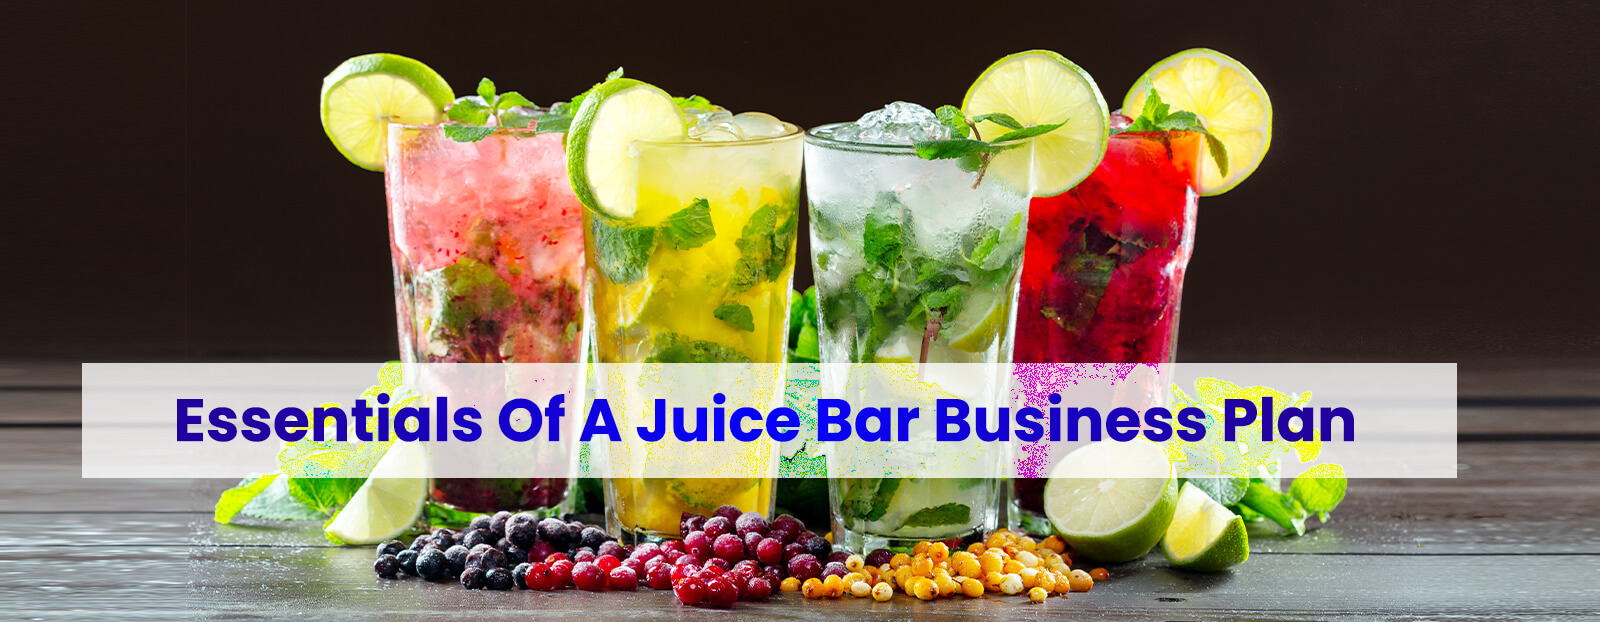 Essentials Of A Juice Bar Business Plan